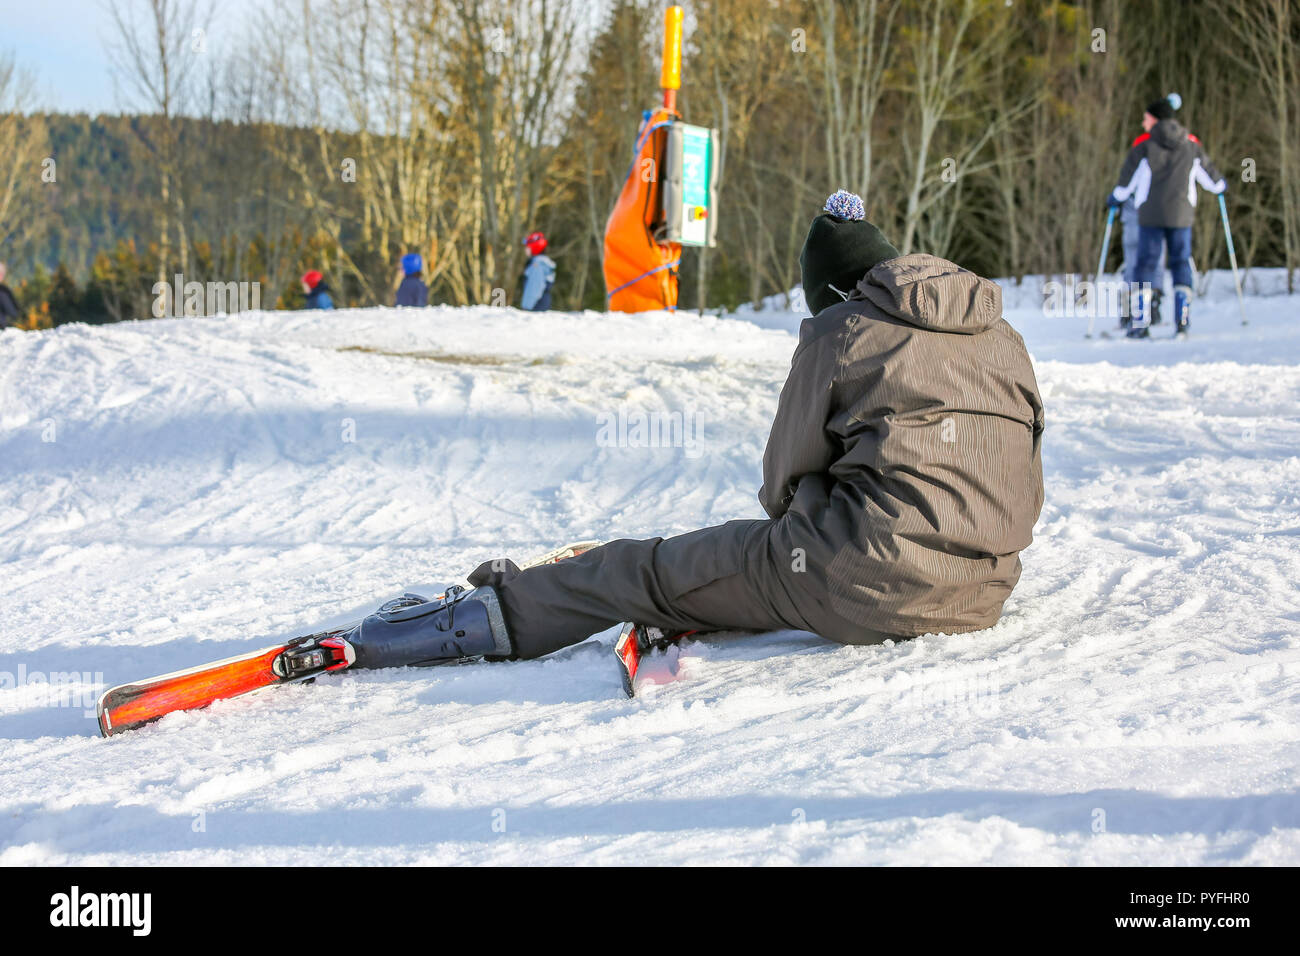 GERARDMER, FRANCE - FEB 16- Beginner skier fell to the ground during the annual winter school holiday on Feb 16, 2015 in Gerardmer, France - Stock Image